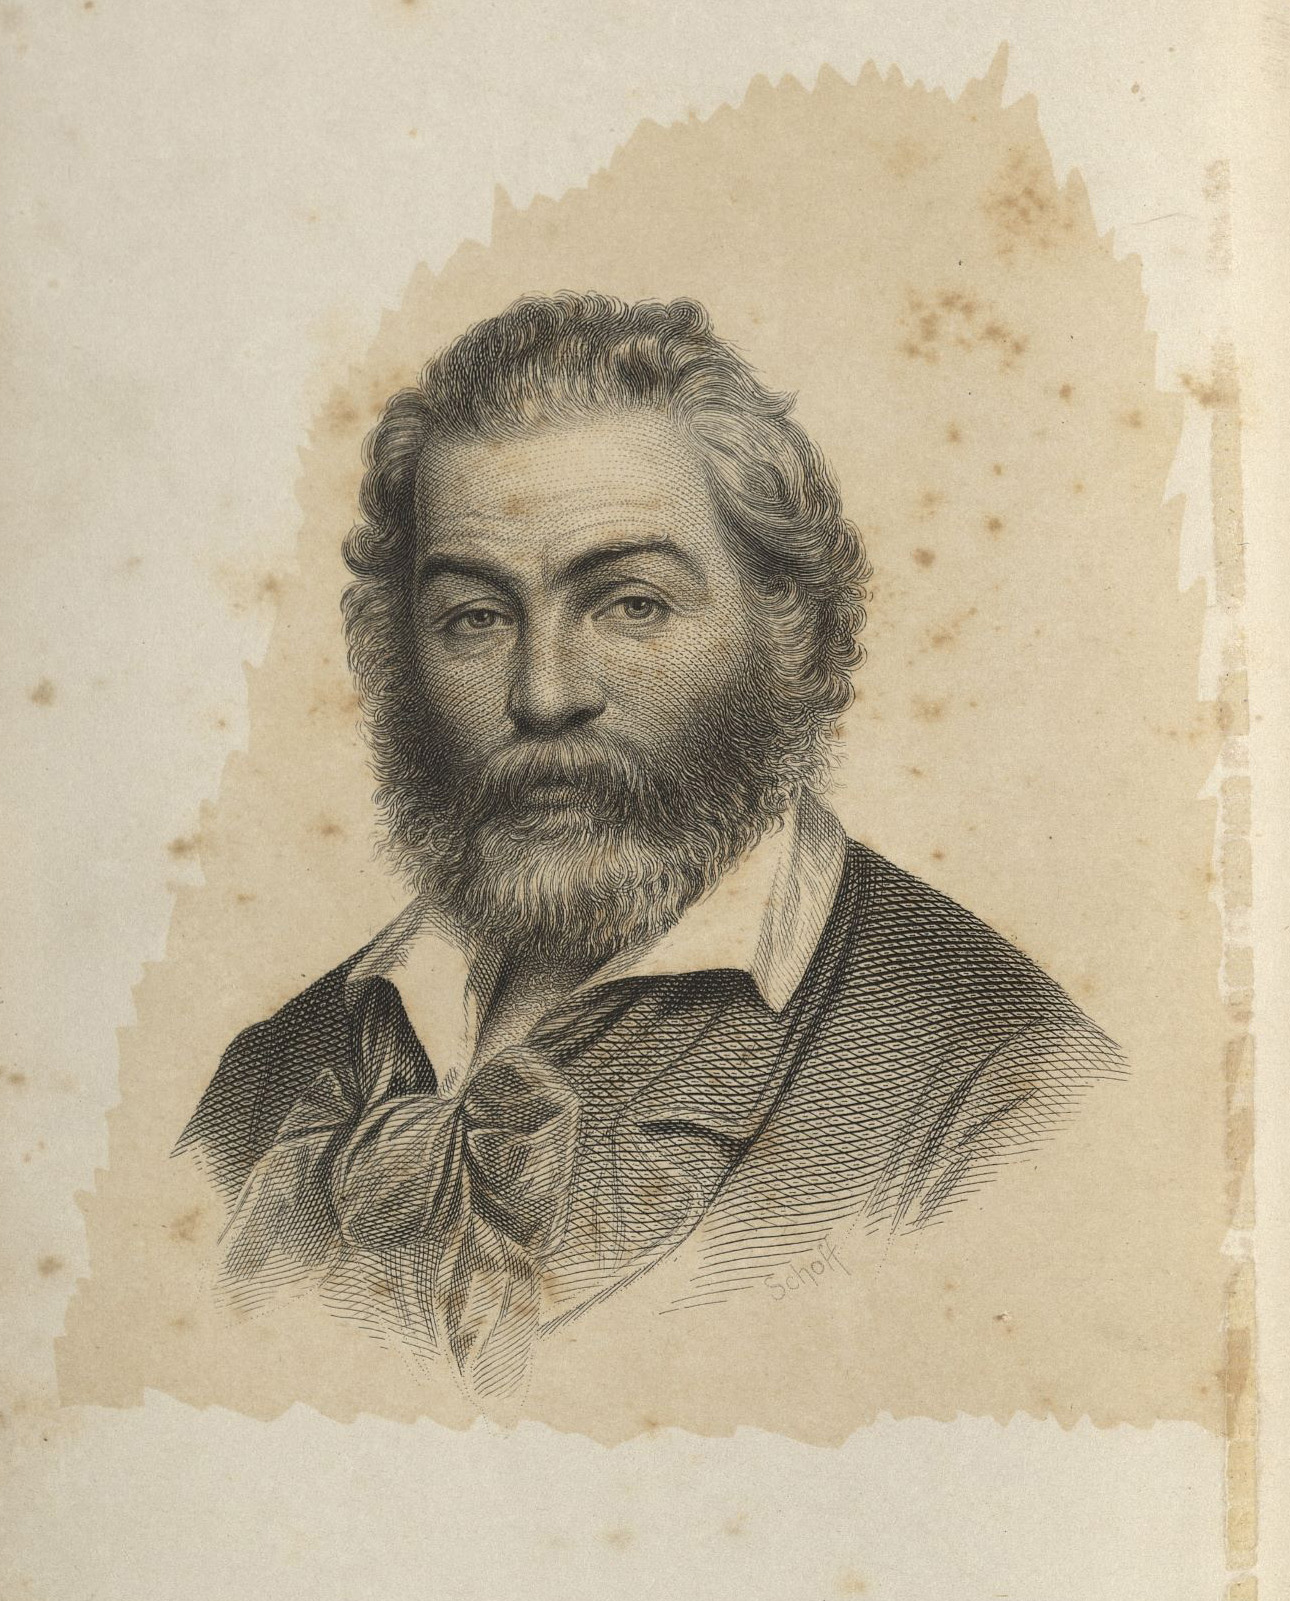 Engraving of Whitman as frontispiece of the 1860 third edition of Leaves of Grass.